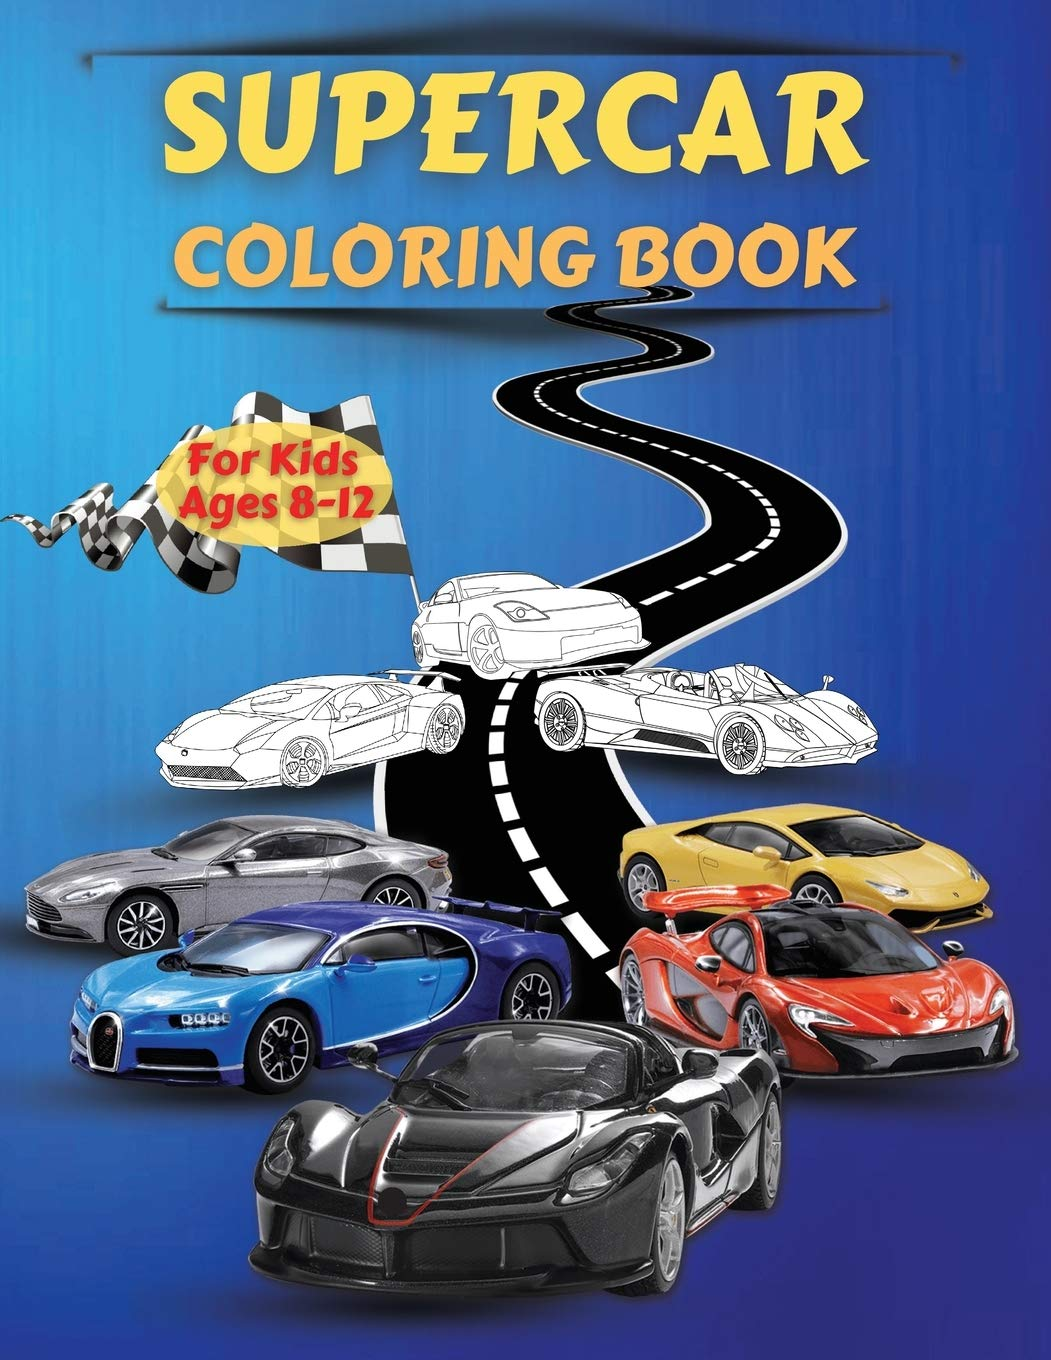 Supercar Coloring Book For Kids Ages 8 12 Amazing Collection Of Cool Cars Coloring Pages Cars Activity Book For Kids Ages 6 8 And 8 12 Boys And Illustrations Of Supercars For Coloring